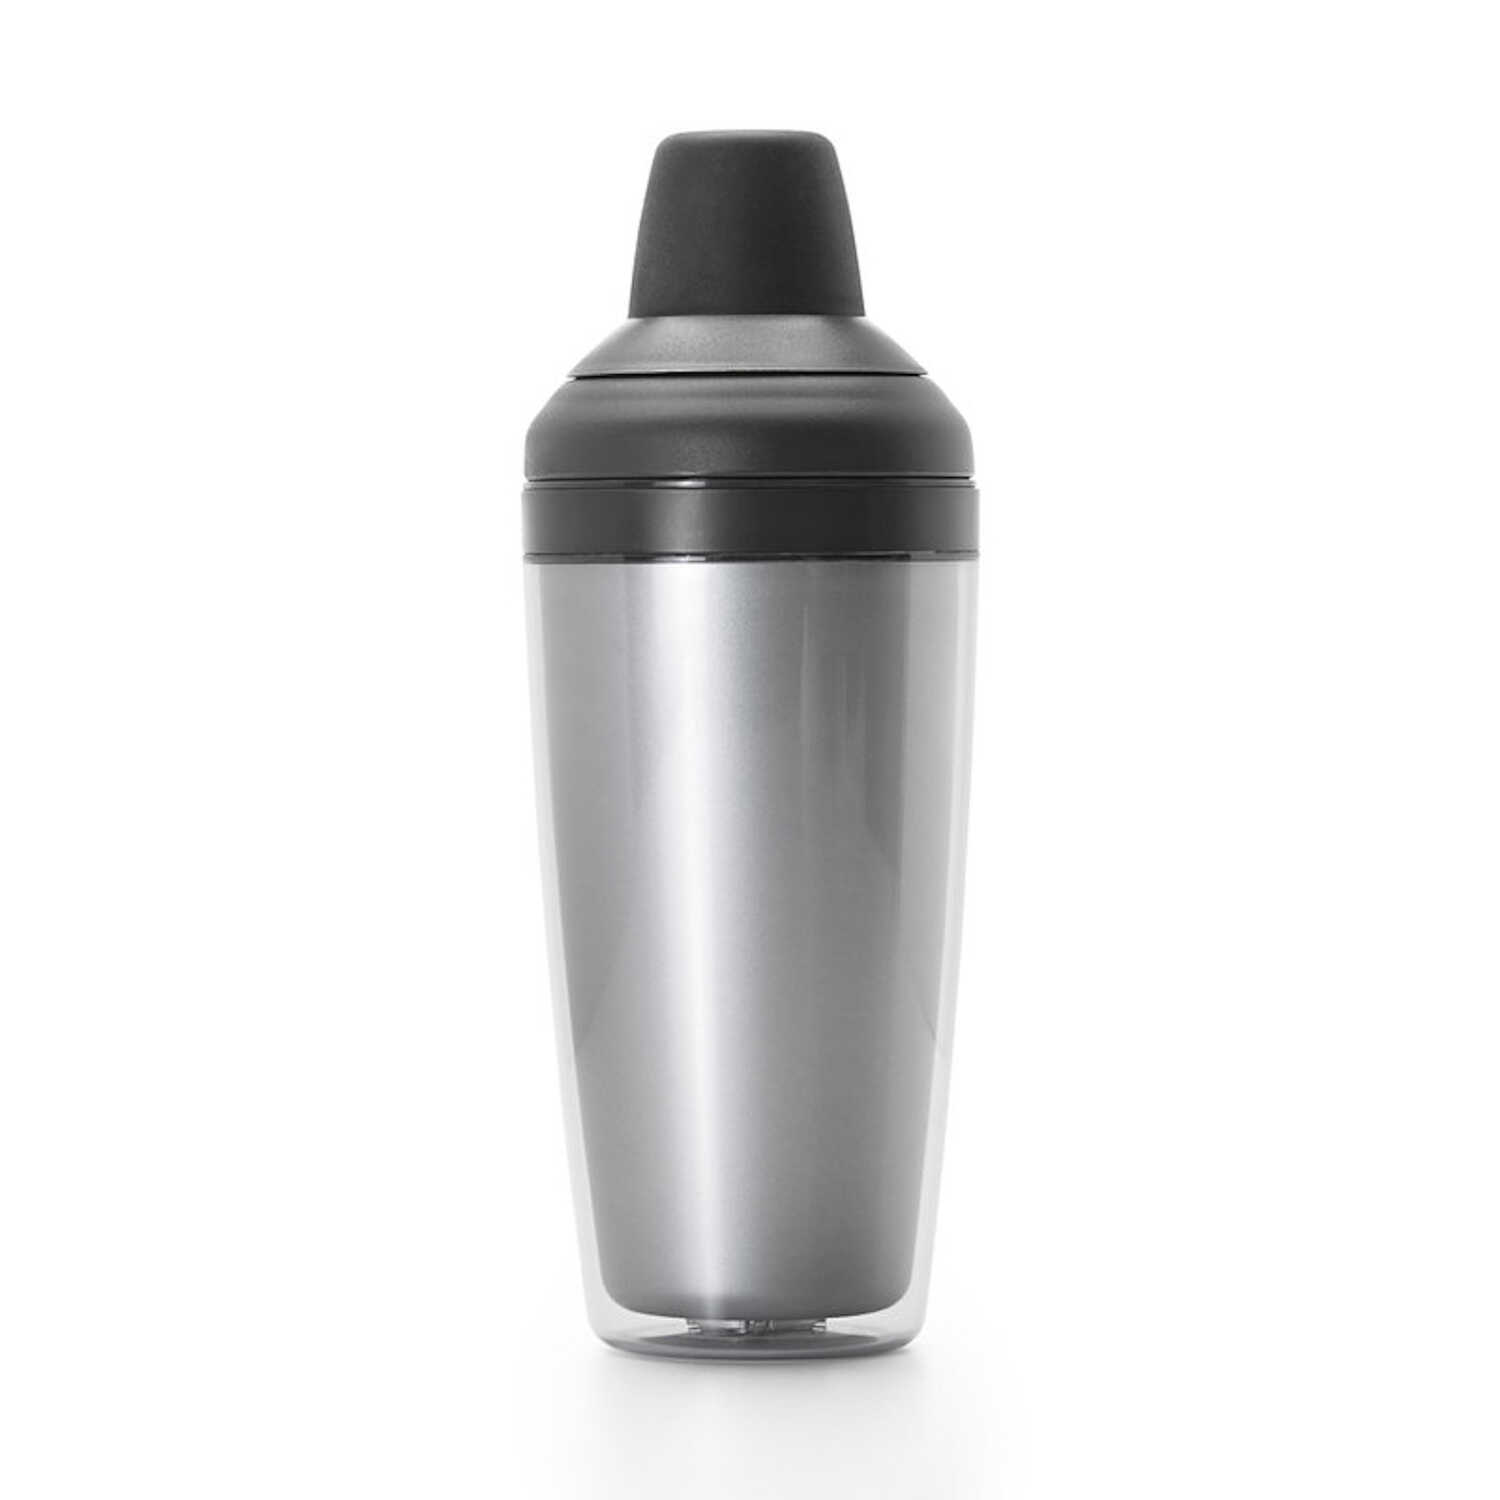 OXO  Good Grips  16 oz. Black/Silver  Cocktail Shaker  Plastic